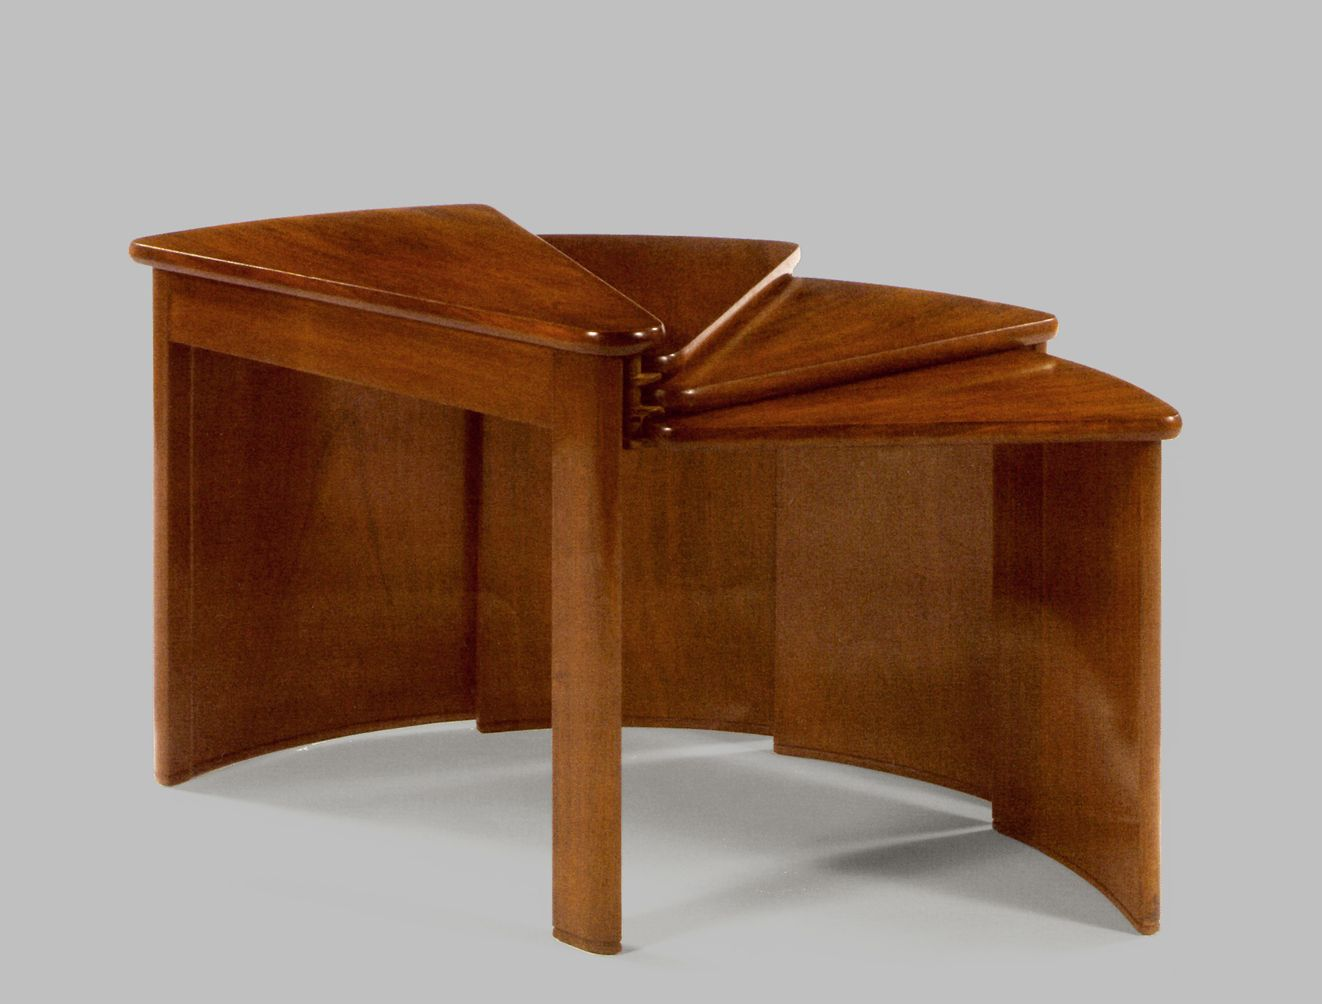 mb106 fan shaped table by pierre chareau 1920s for sale at pamono. Black Bedroom Furniture Sets. Home Design Ideas